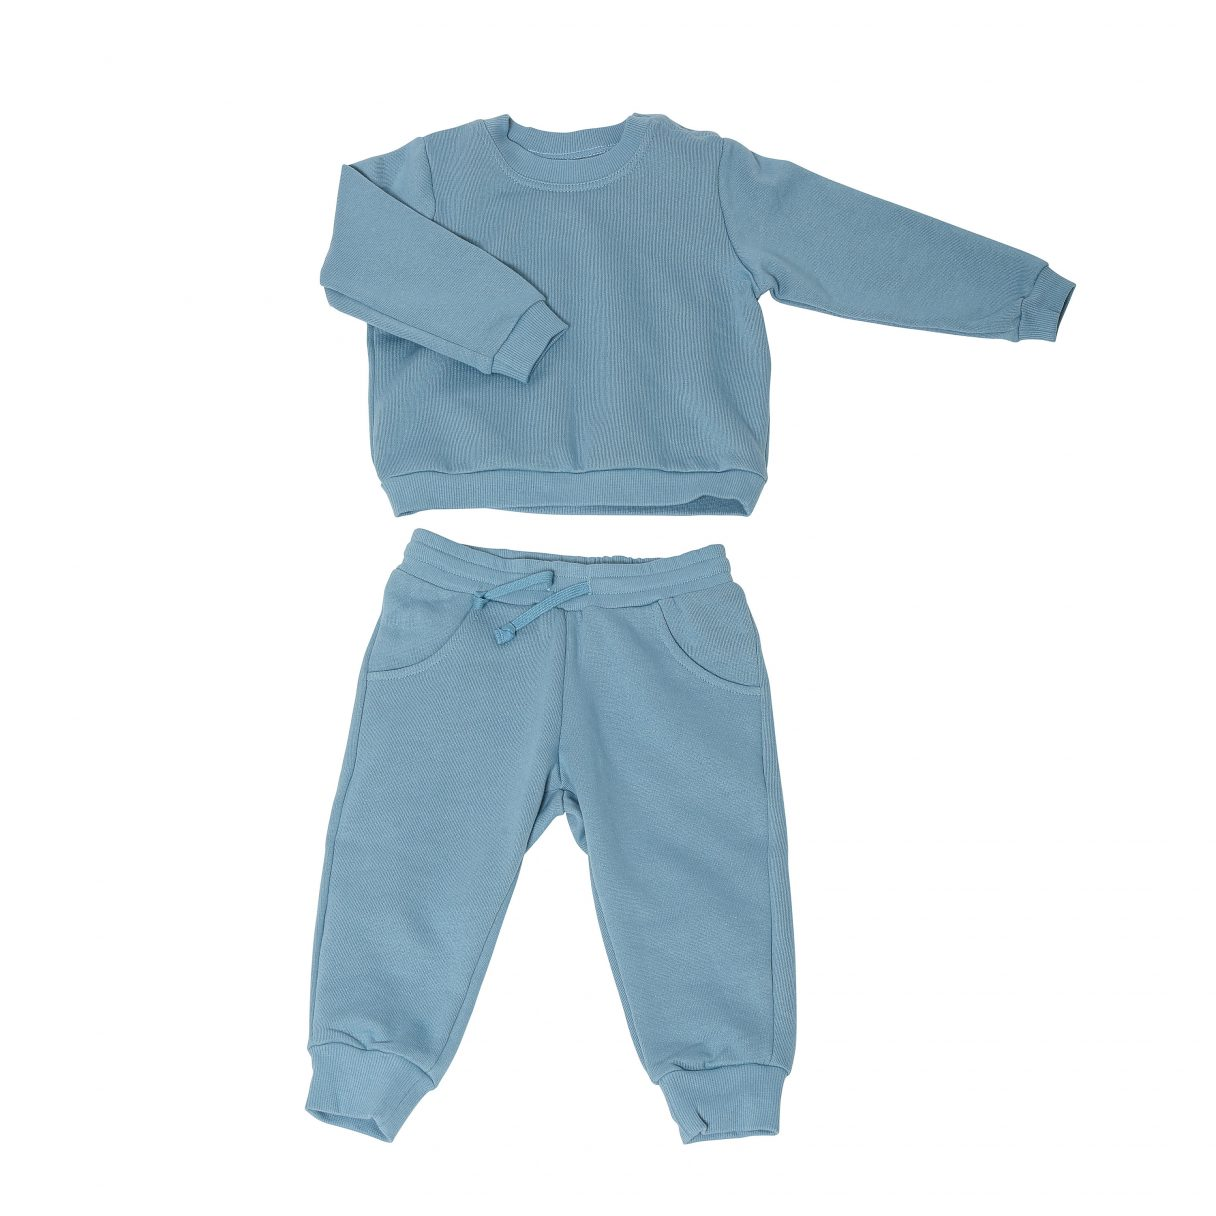 Baby Sweatsuit Organic Cotton Blue 1